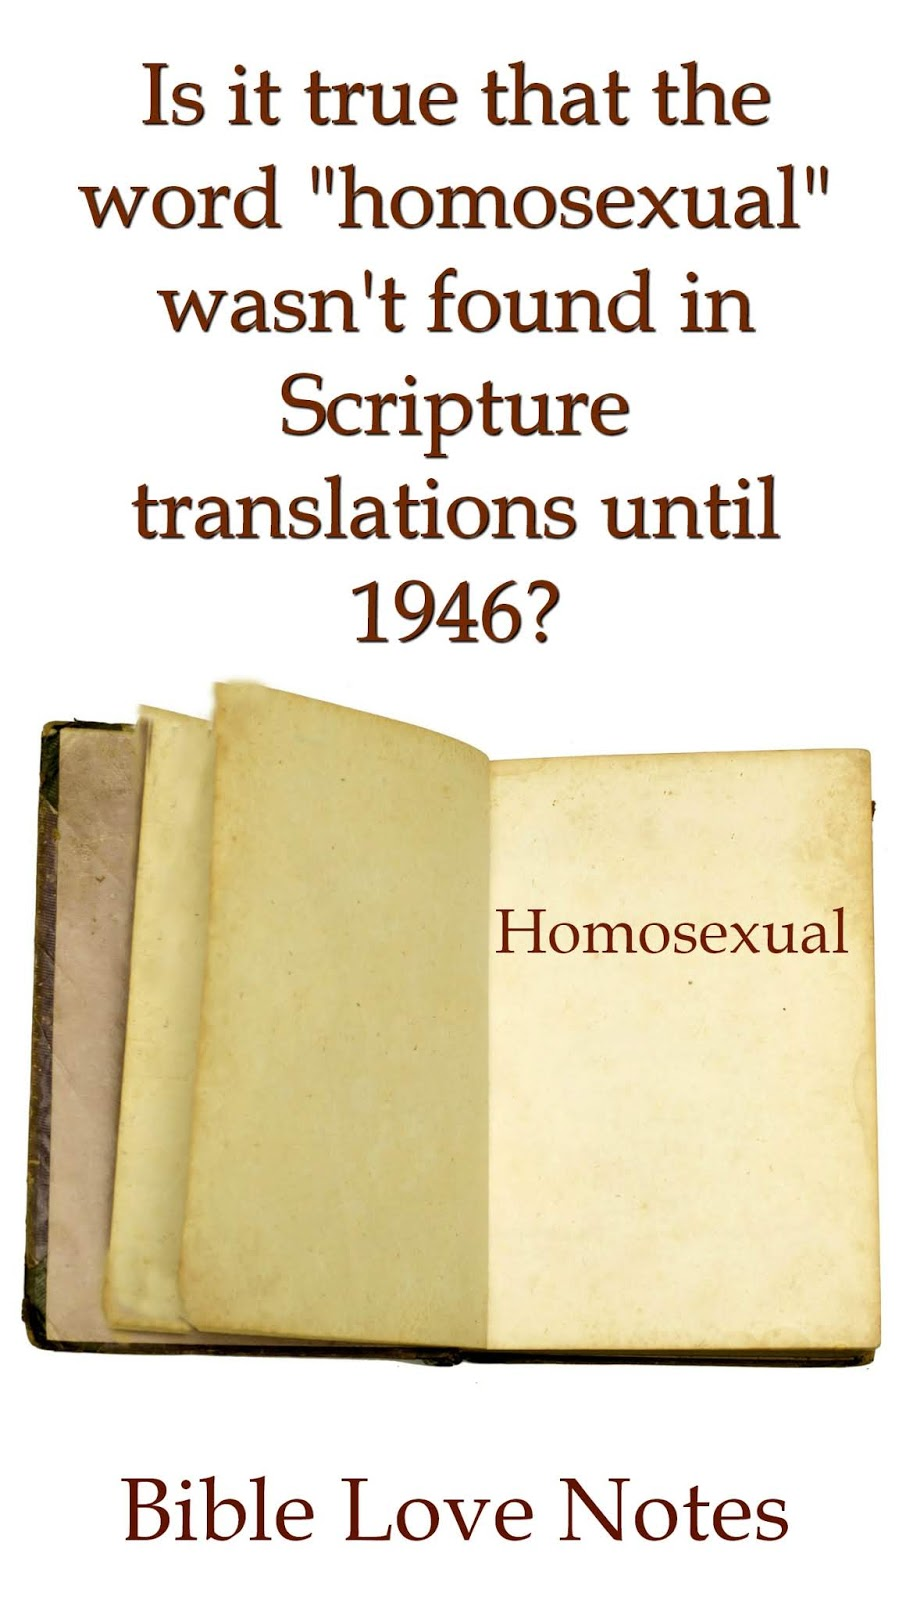 Bible scripture on homosexuality